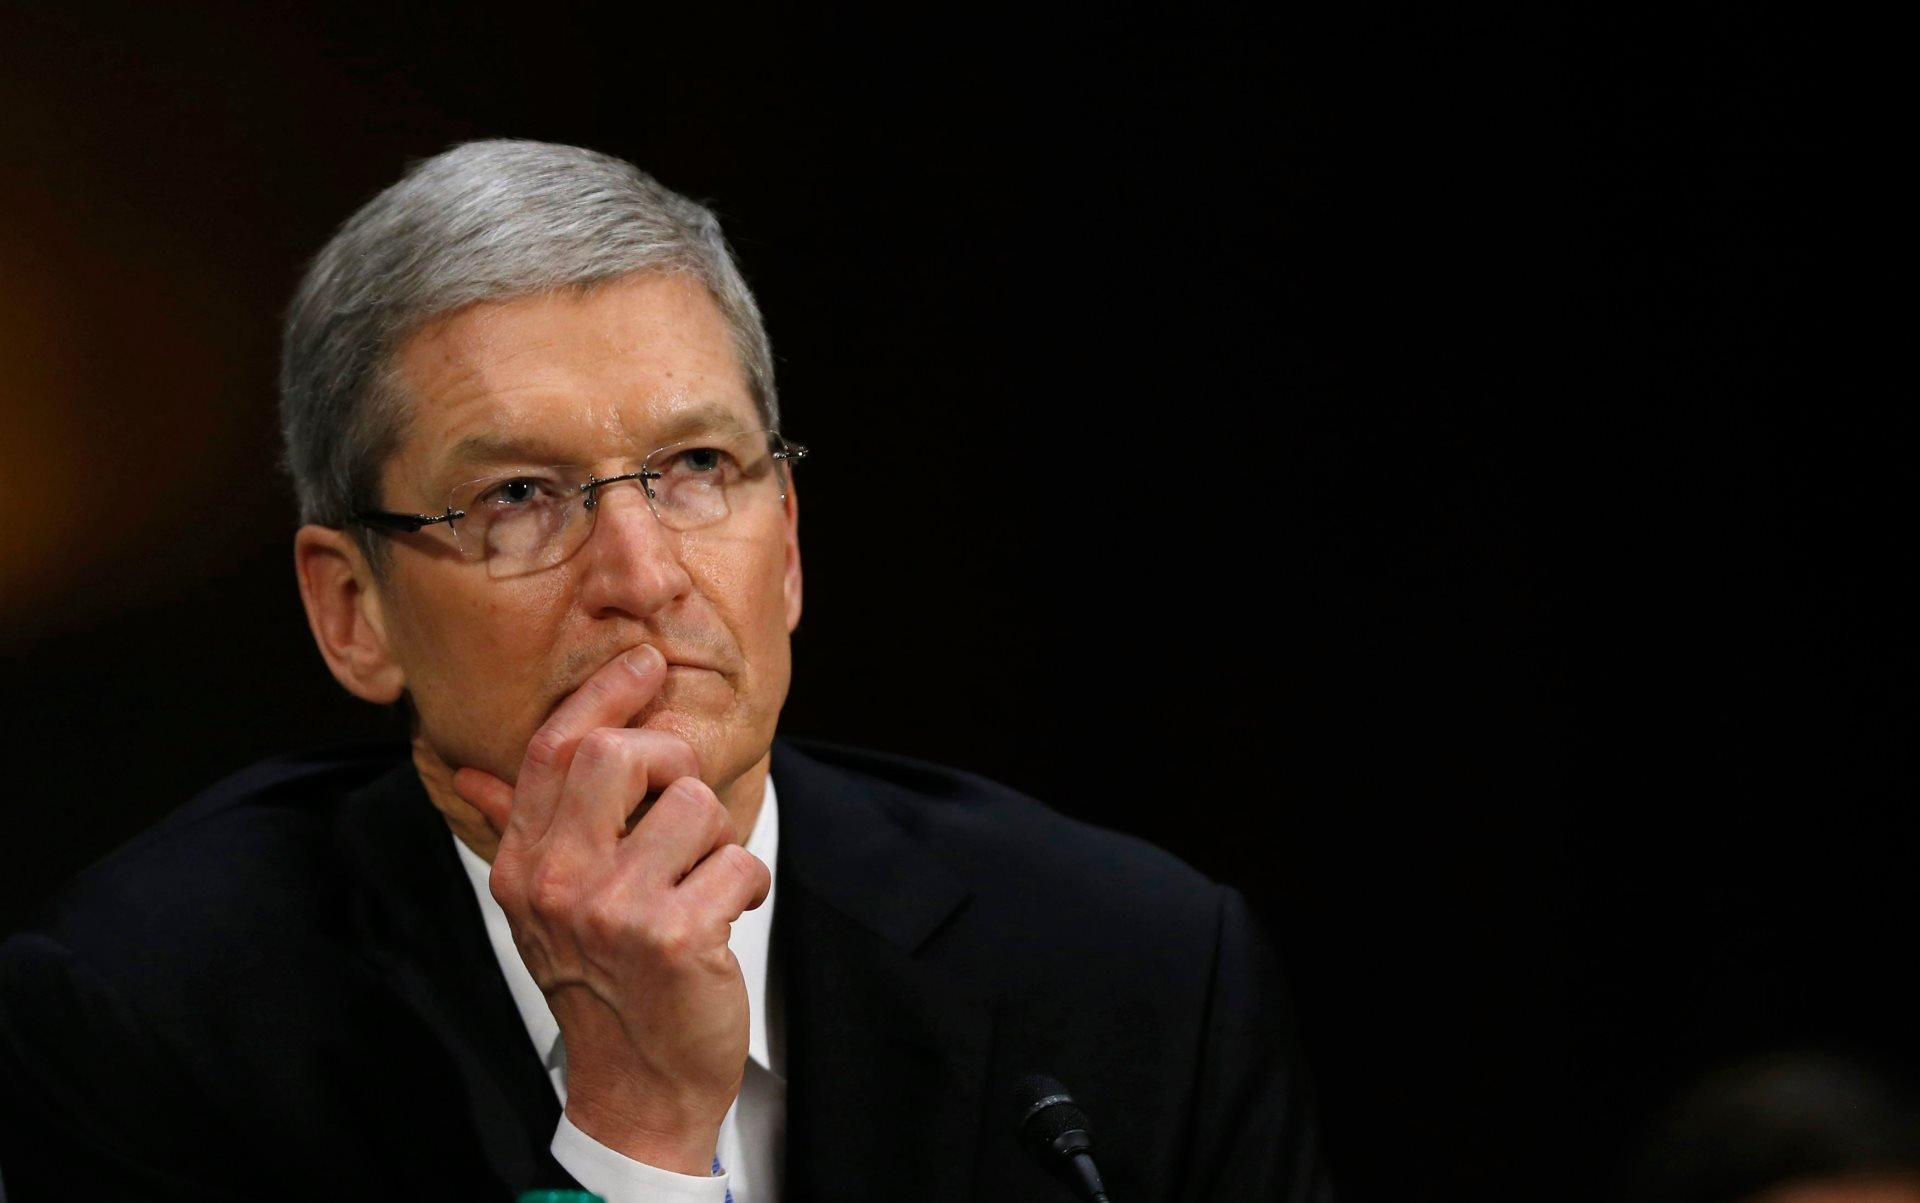 Apple: Tim Cook scrive una lettera aperta ai propri consumatori sulla privacy